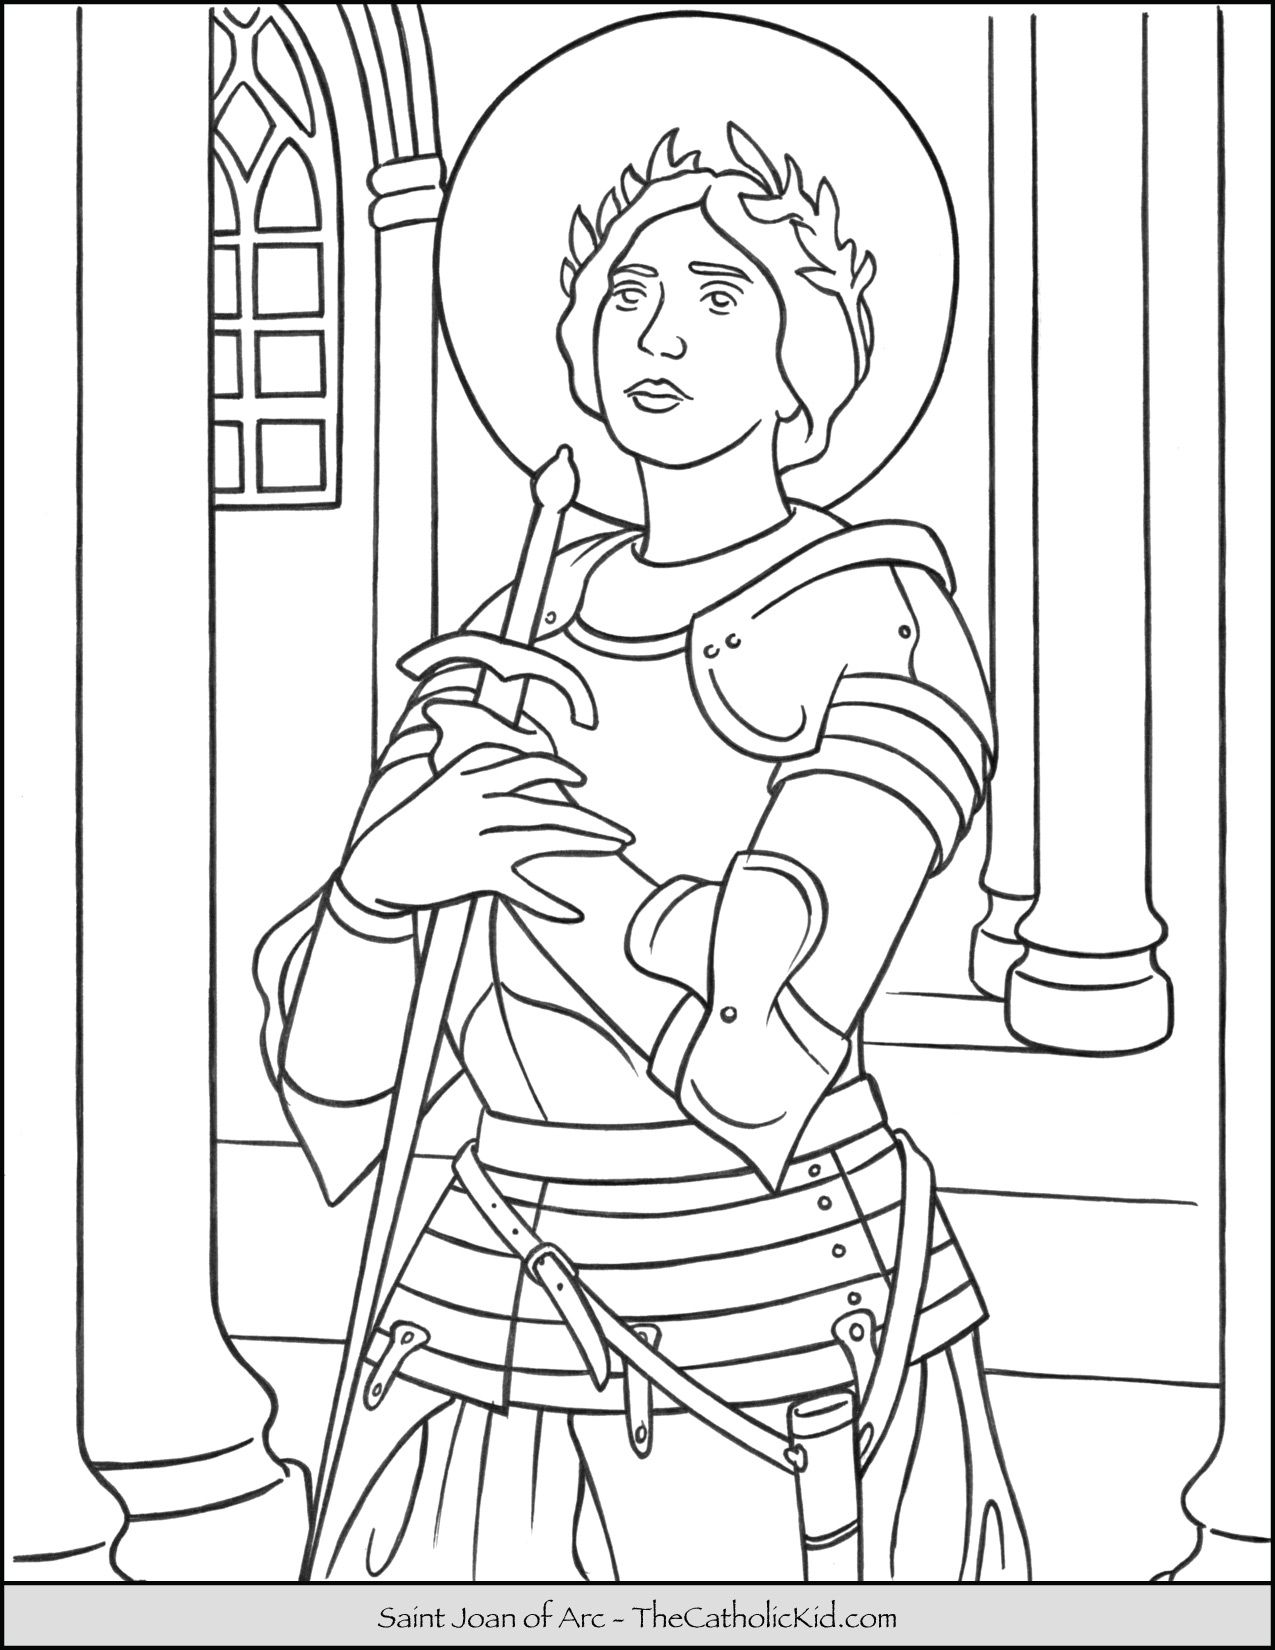 Saint Joan Of Arc Coloring Page Thecatholickid Com Saint